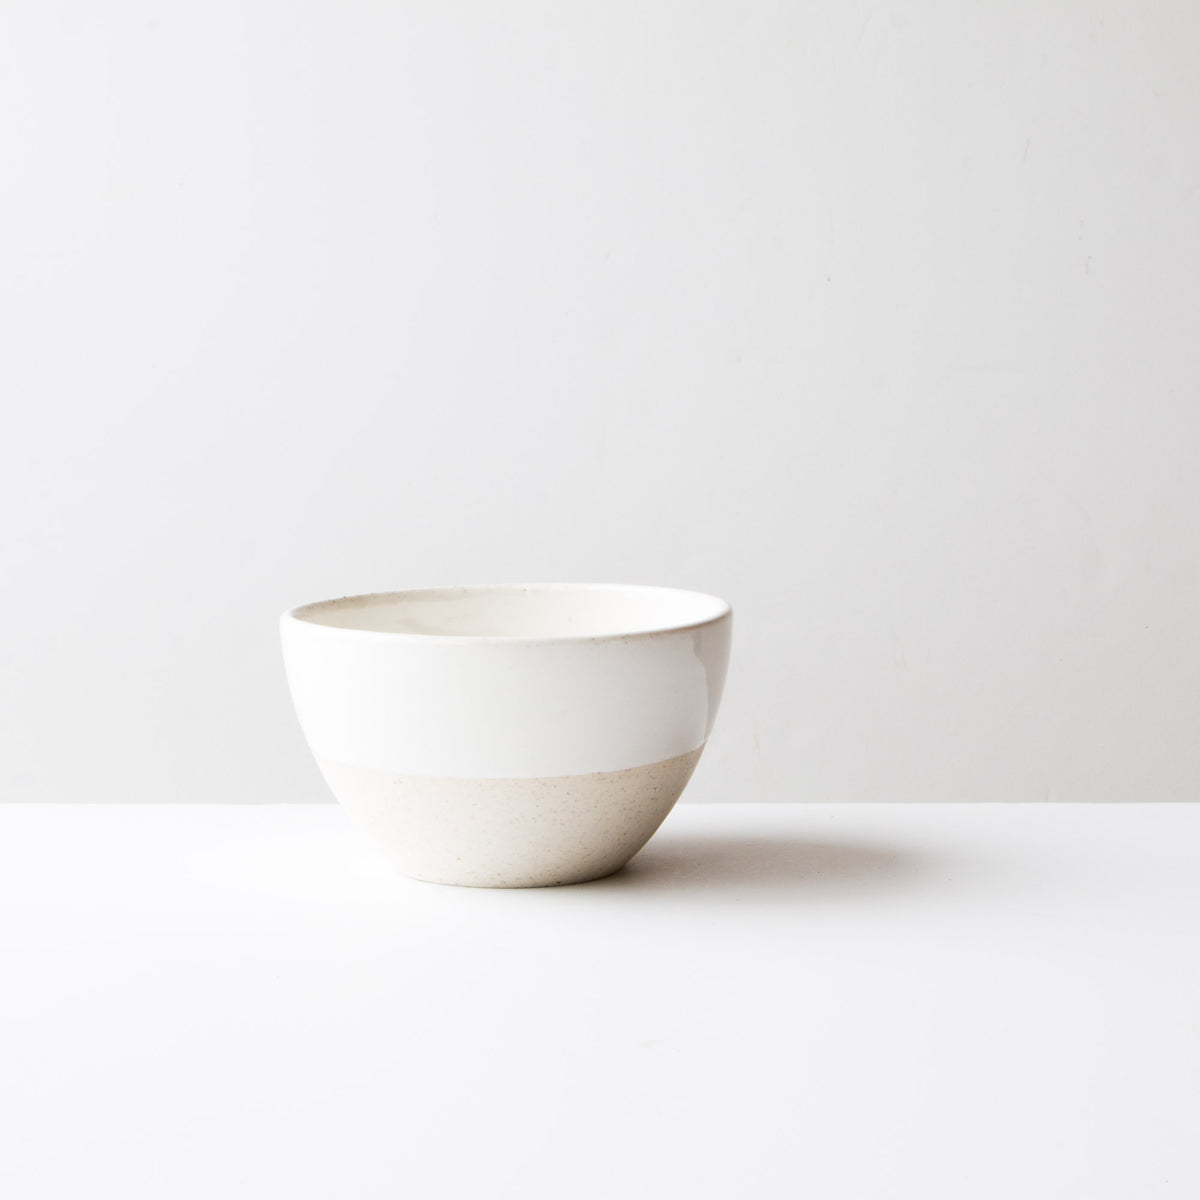 Oatmeal Clay - Soft White Glaze - Large Ceramic Soup Bowl - Handmade in Québec - Sold by Chic & Basta